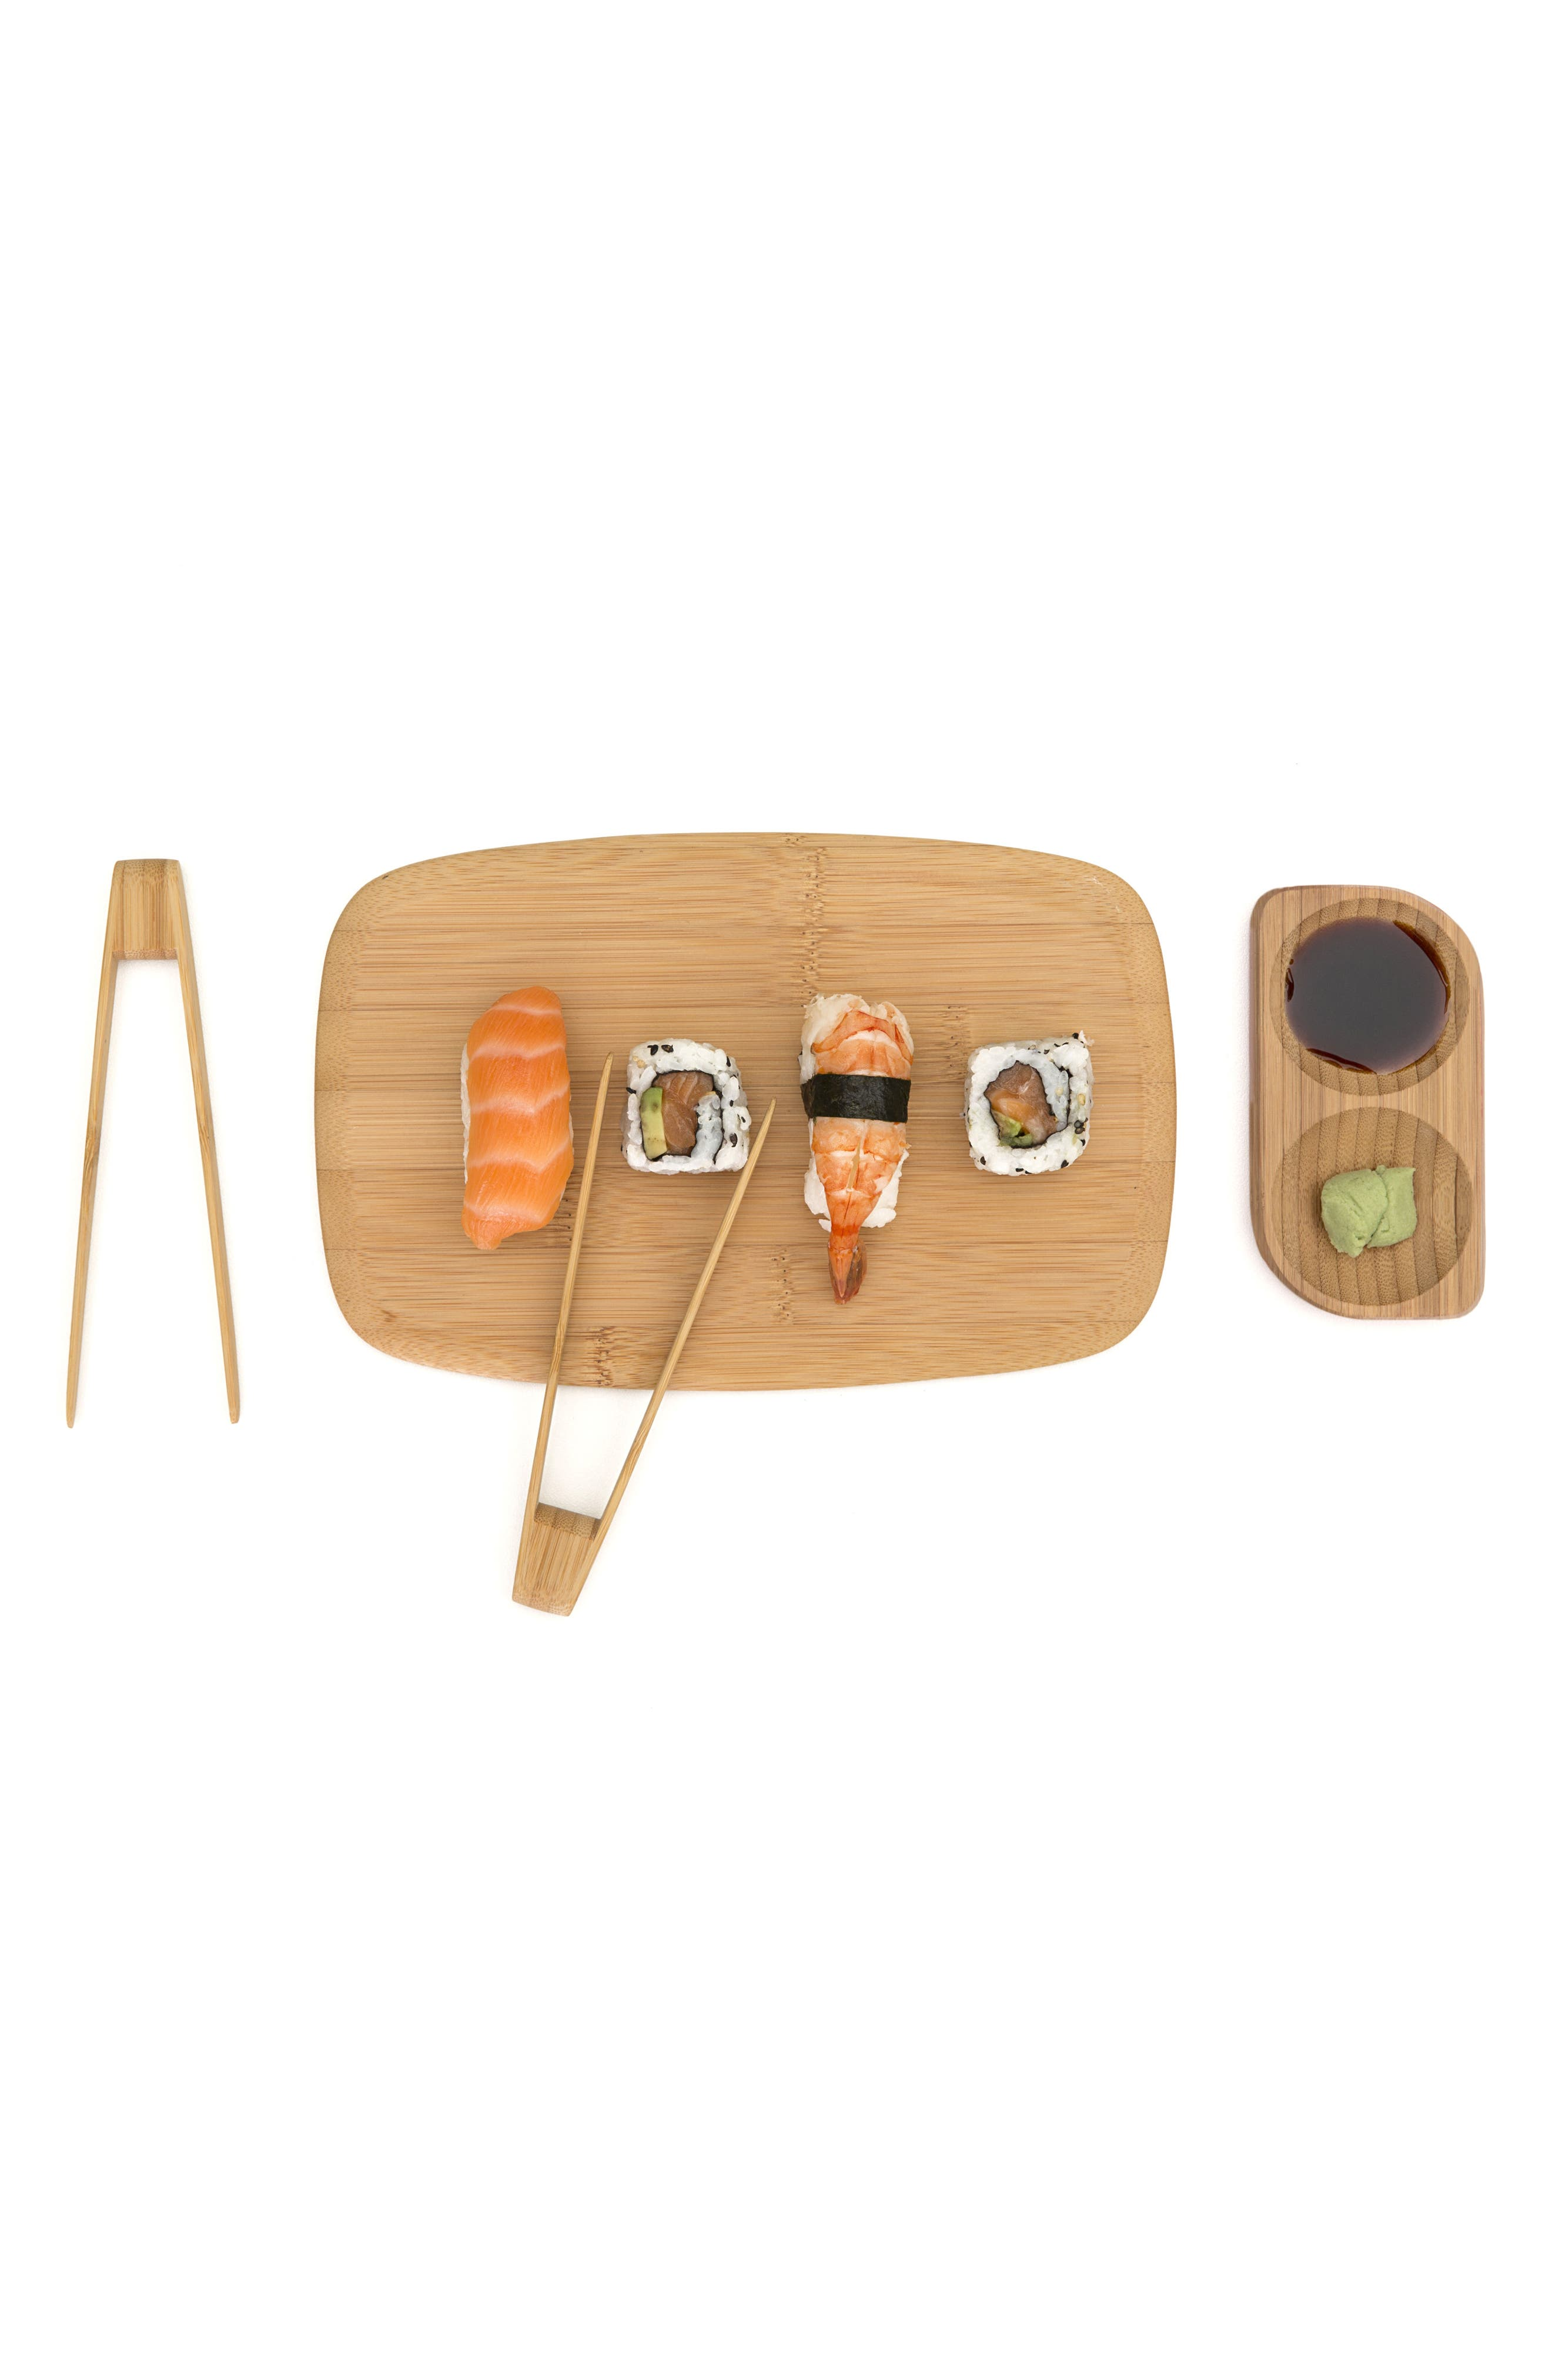 3-Piece Bamboo Sushi Tray & Songs Set,                             Alternate thumbnail 3, color,                             250